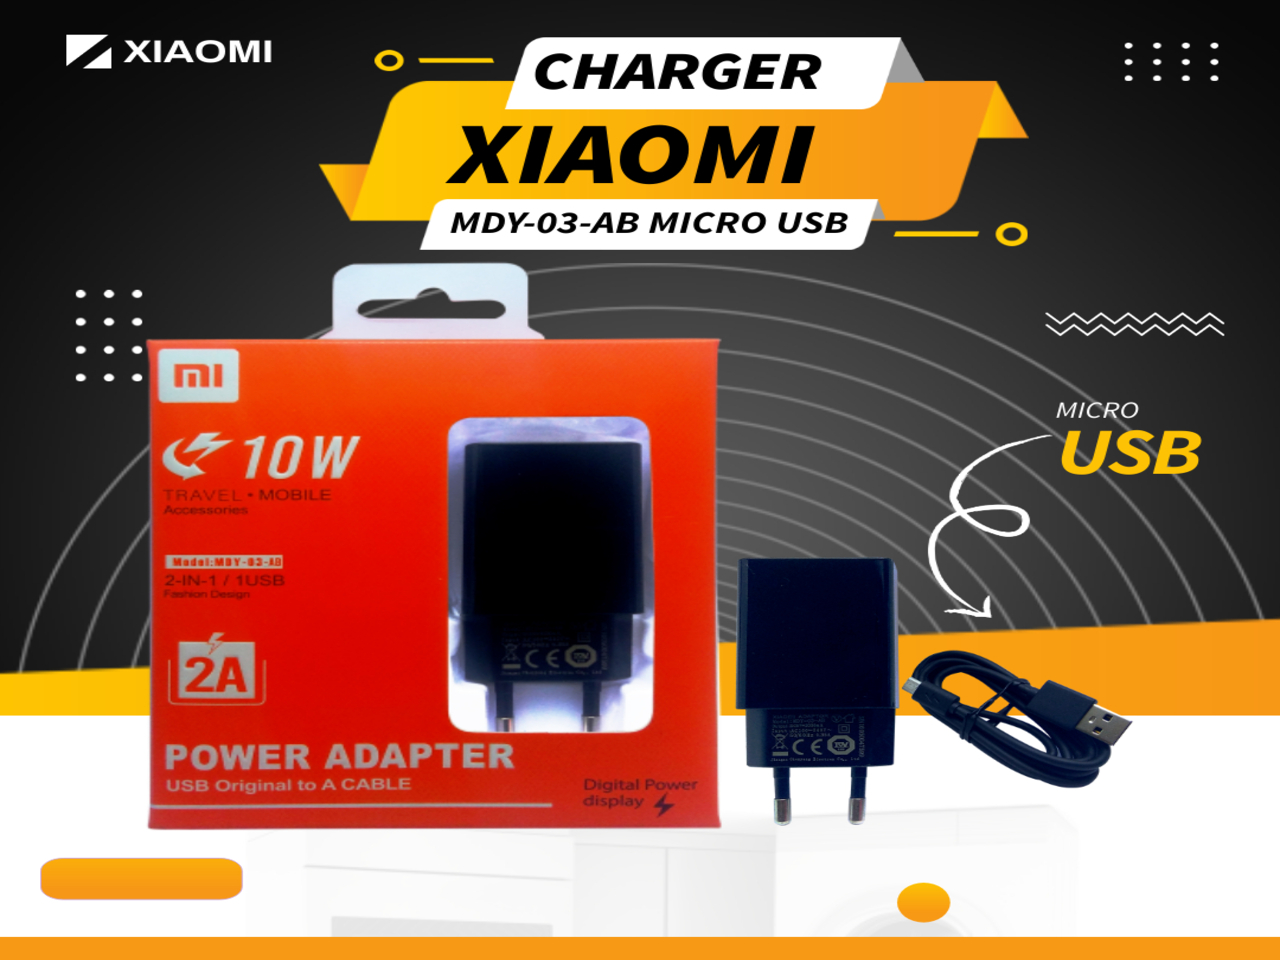 CHARGER-XIAOMI-MDY-03-AB-MICRO